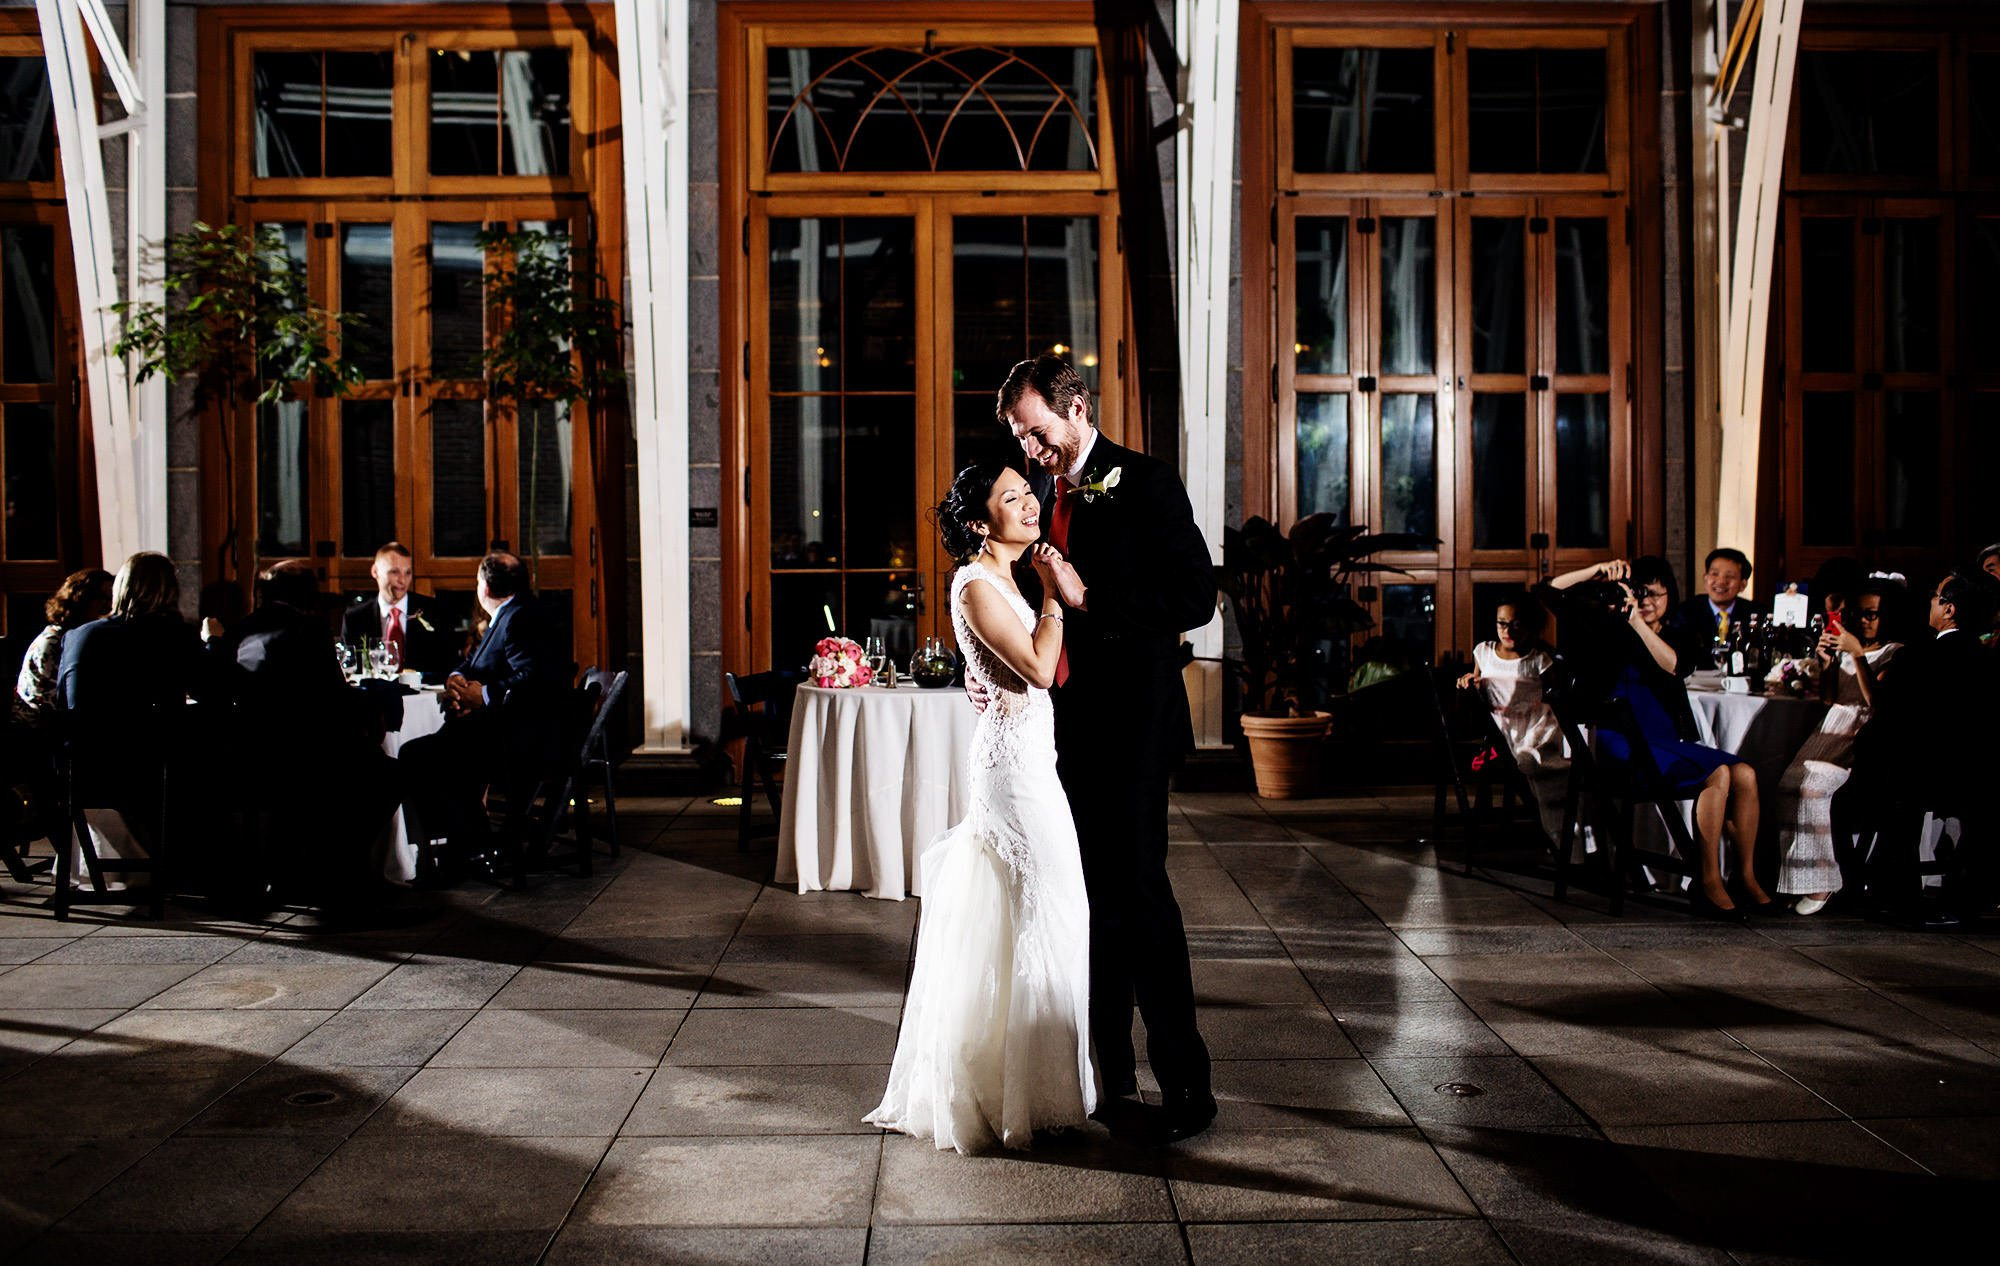 The bride and groom share their first dance during the Tower Hill Botanic Garden Wedding reception.